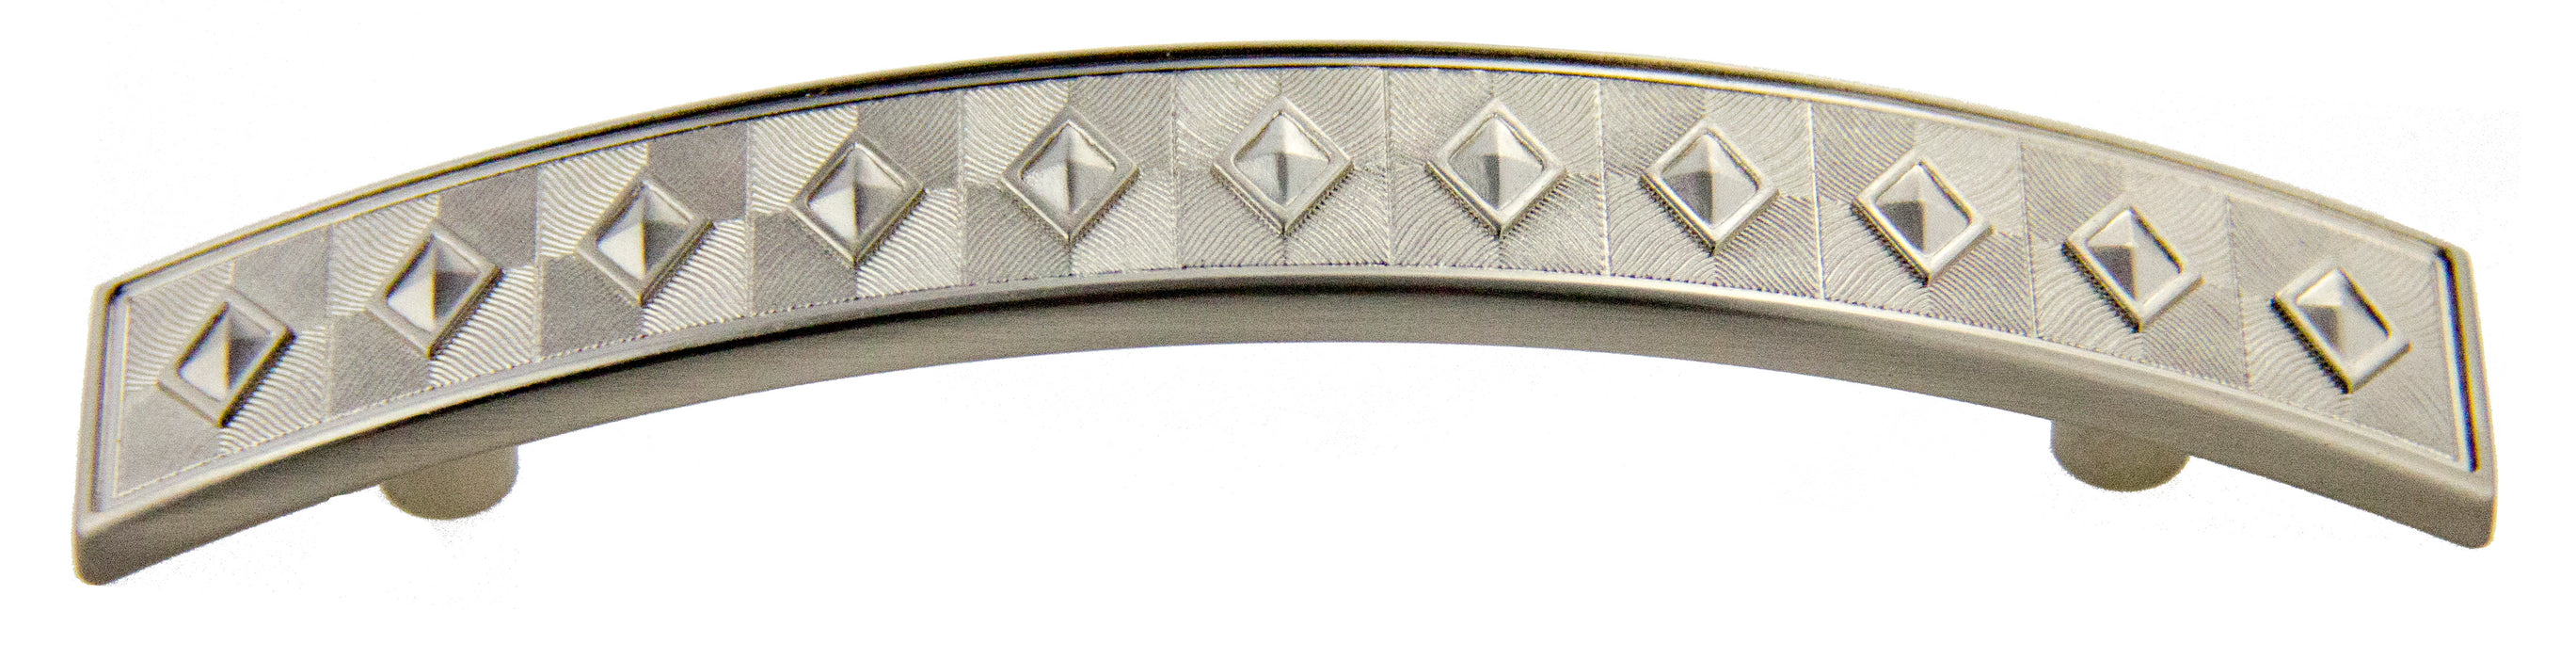 "Andrew Claire Collection 3-3/4"" Diamond Pull Satin Nickel (AC-81393.SN)"